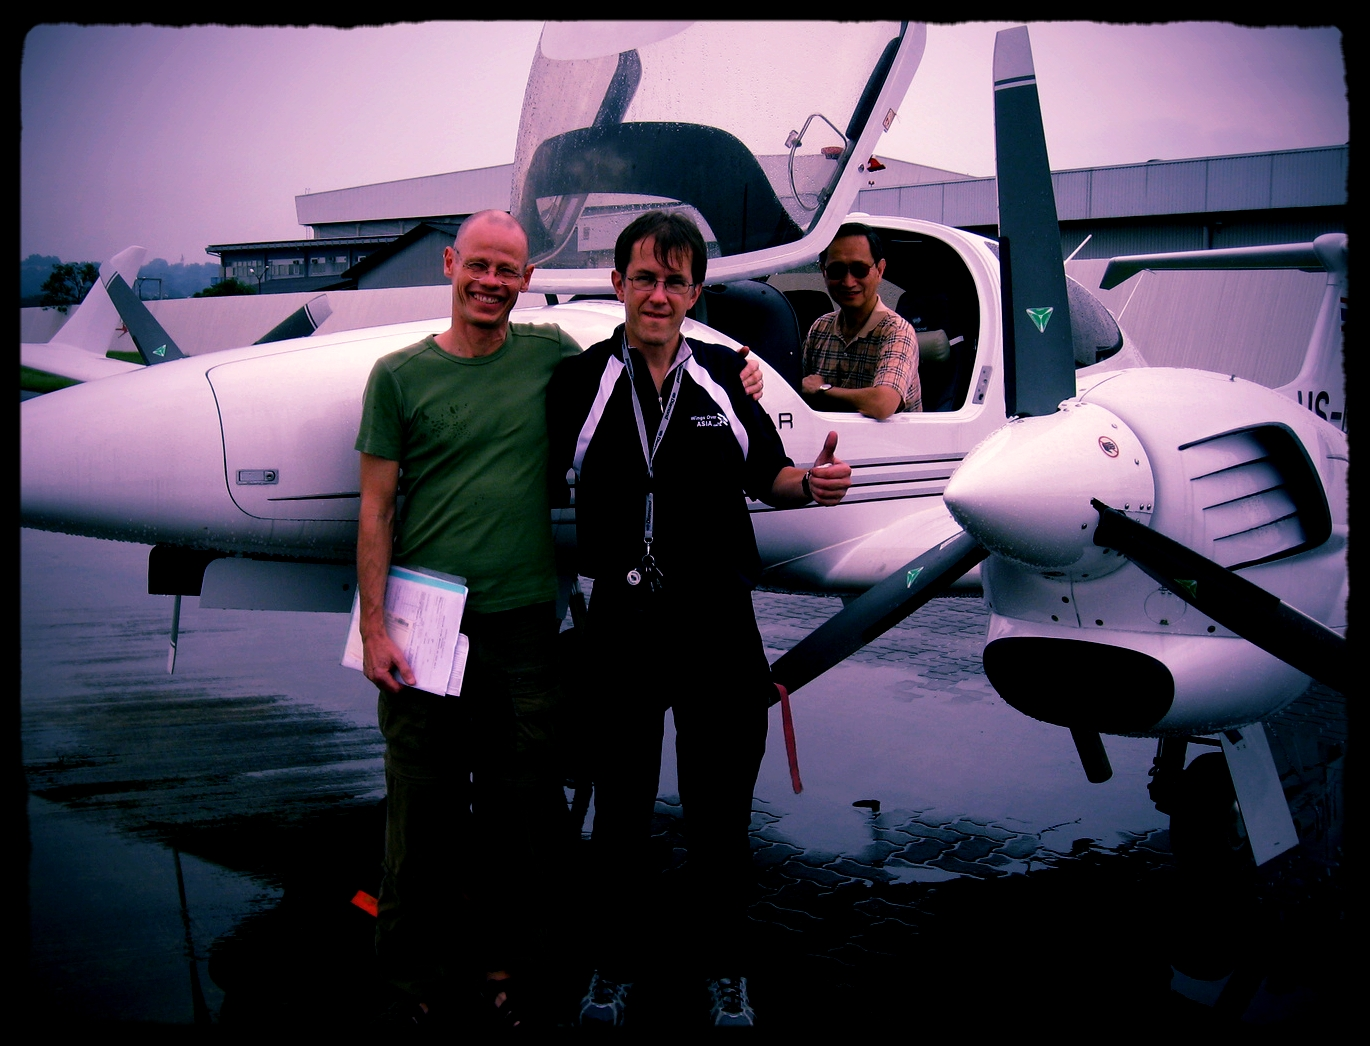 Thailand 1st DA42 and it's owner hanging out with friends.